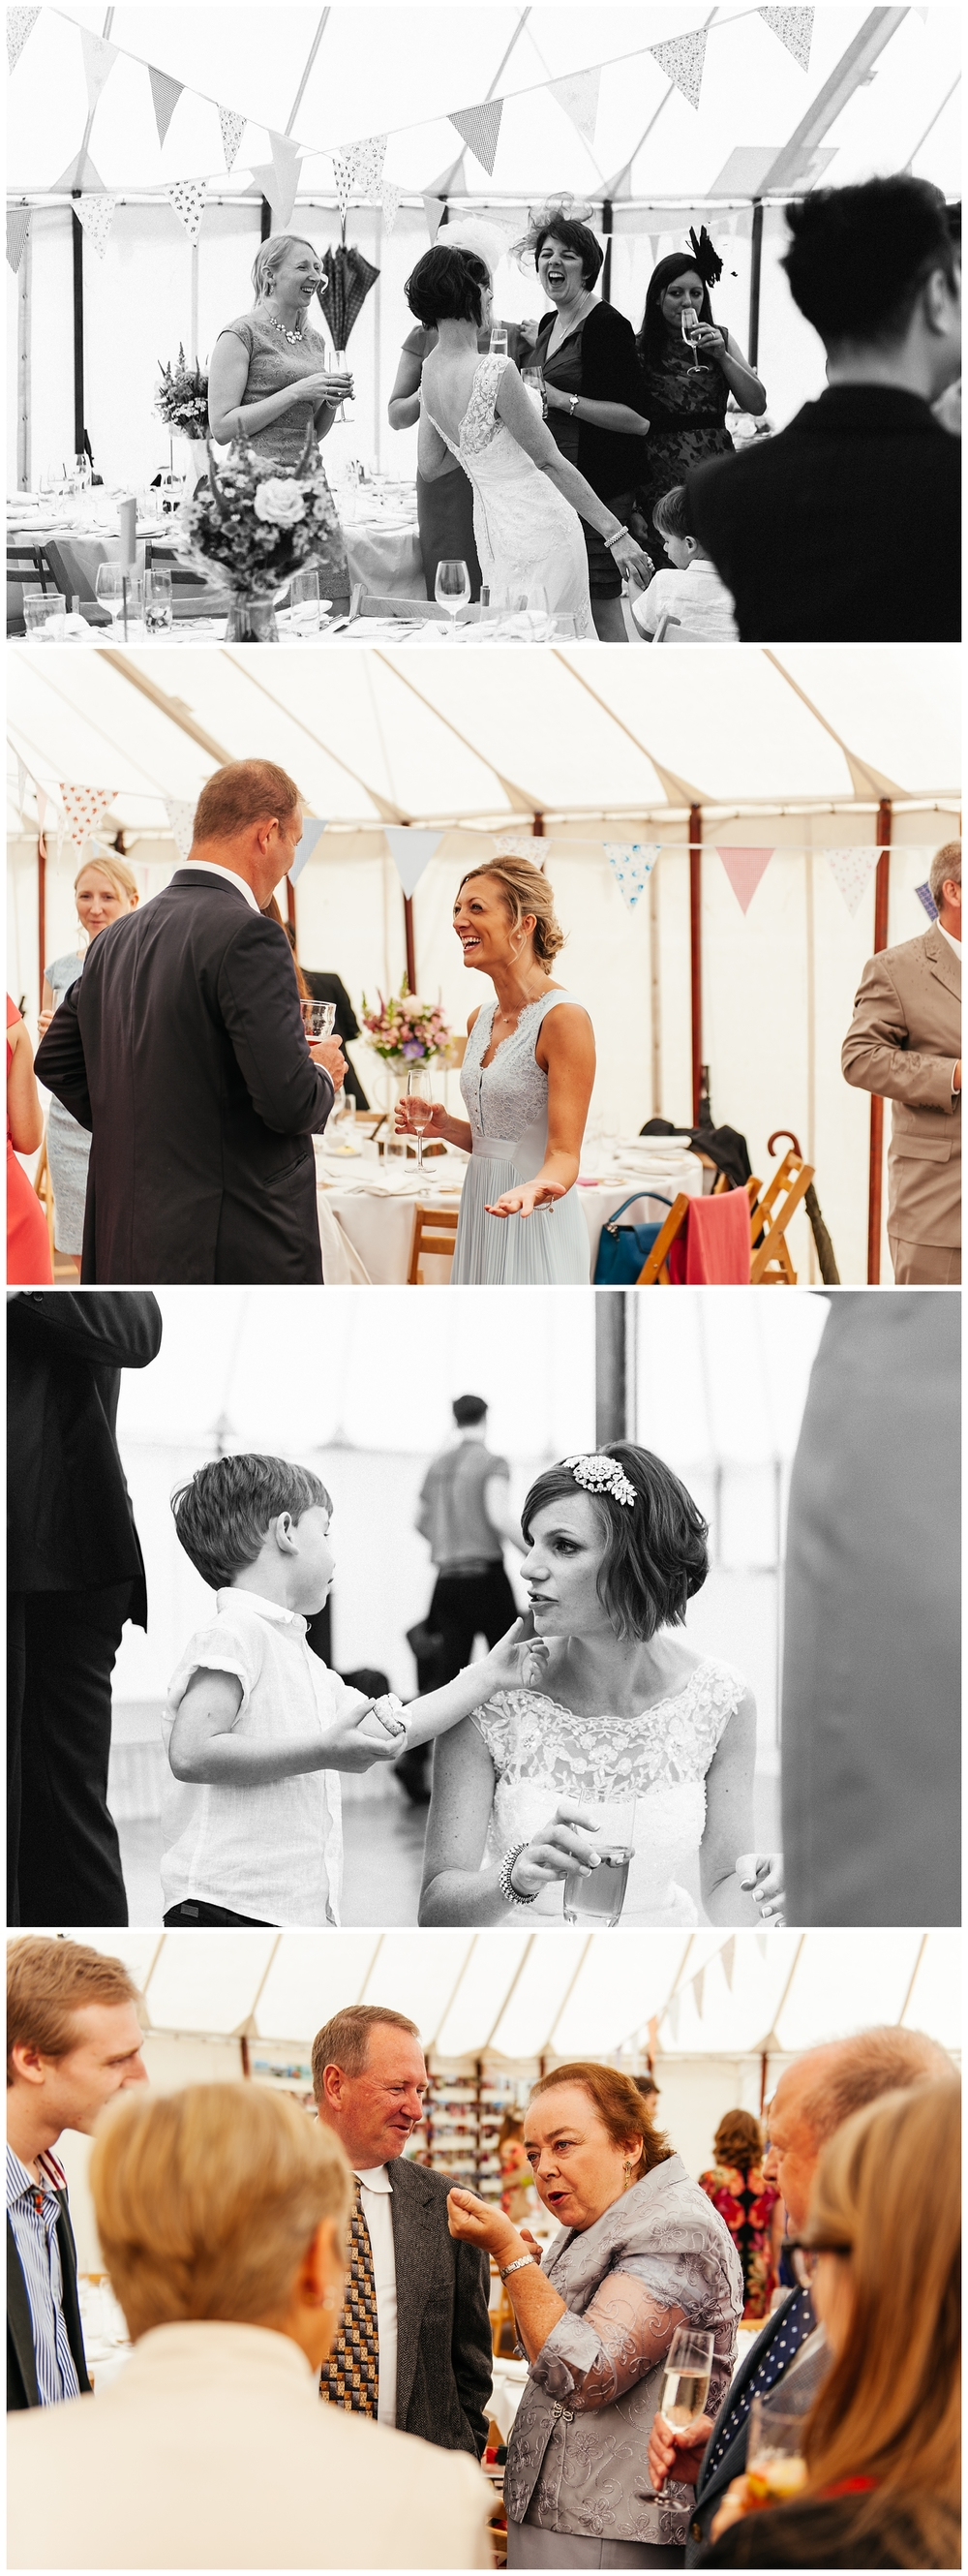 Nikki_Cooper_Photography_Emma&Owen_Wedding_Photos_Hertfordshire_1120.jpg